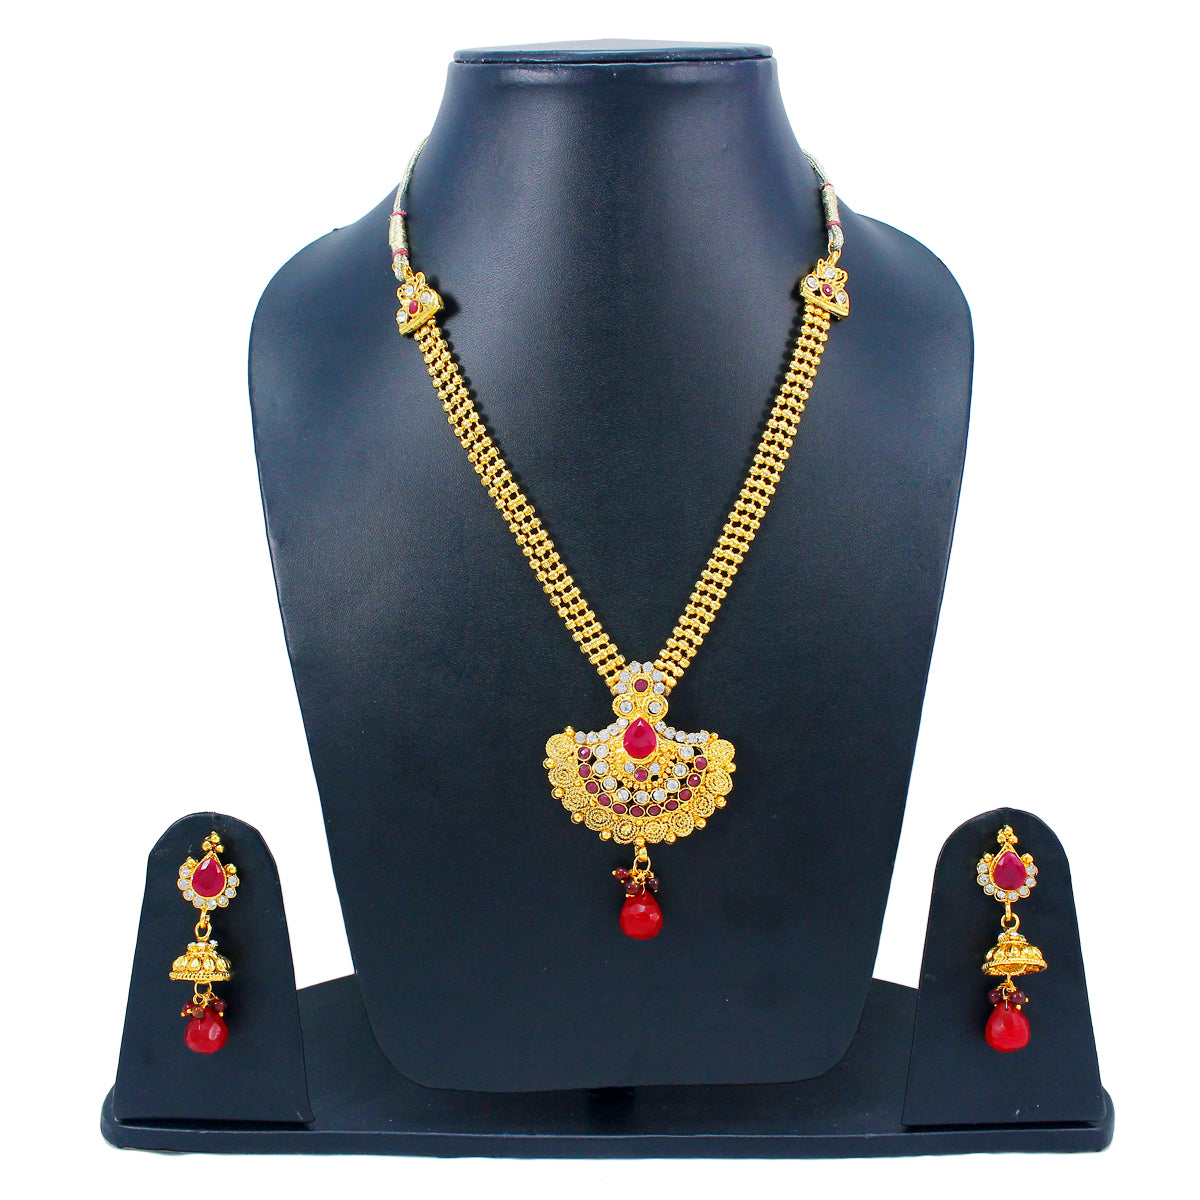 Royal Gold Plated Designer Kundan Stone Rani Har Design Necklace and  Jhumka Earrings with White  Red Stones and Pearl Chain